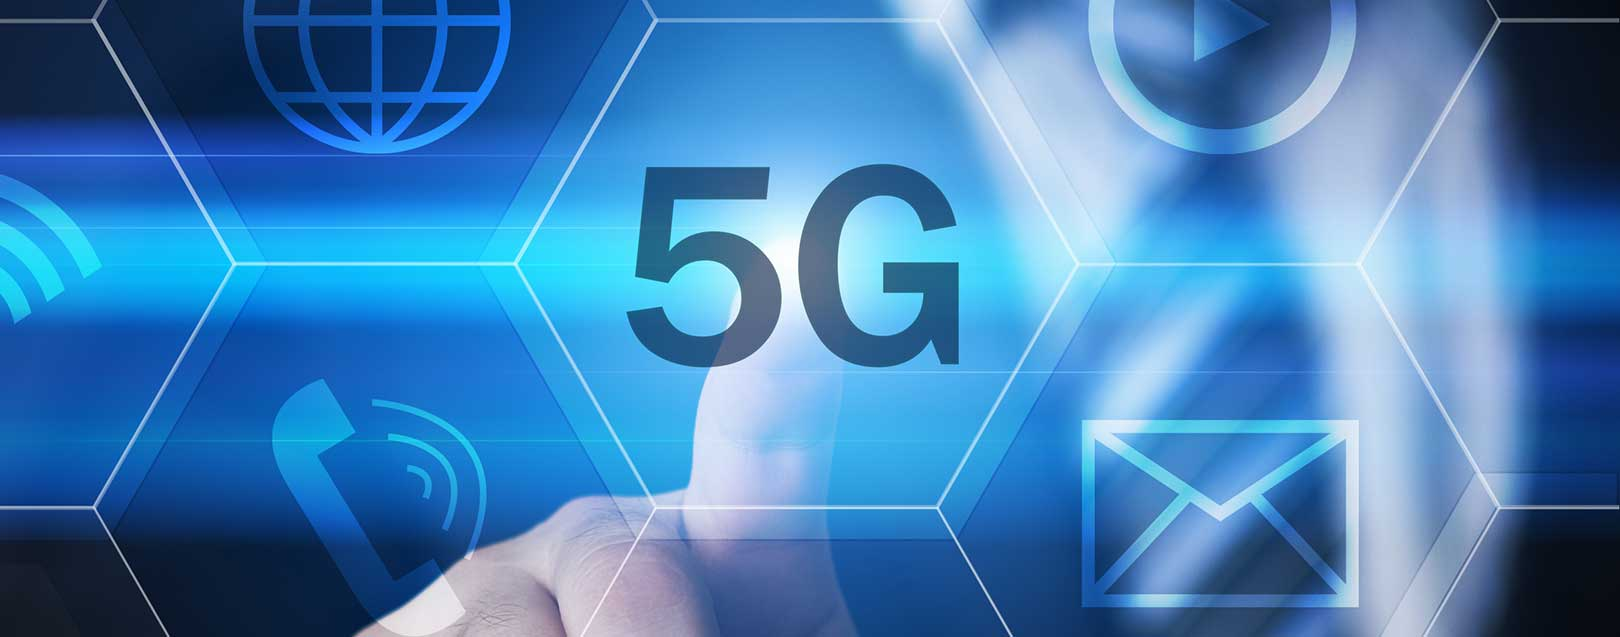 Spectrum policy for roll out of 5G  in India underway